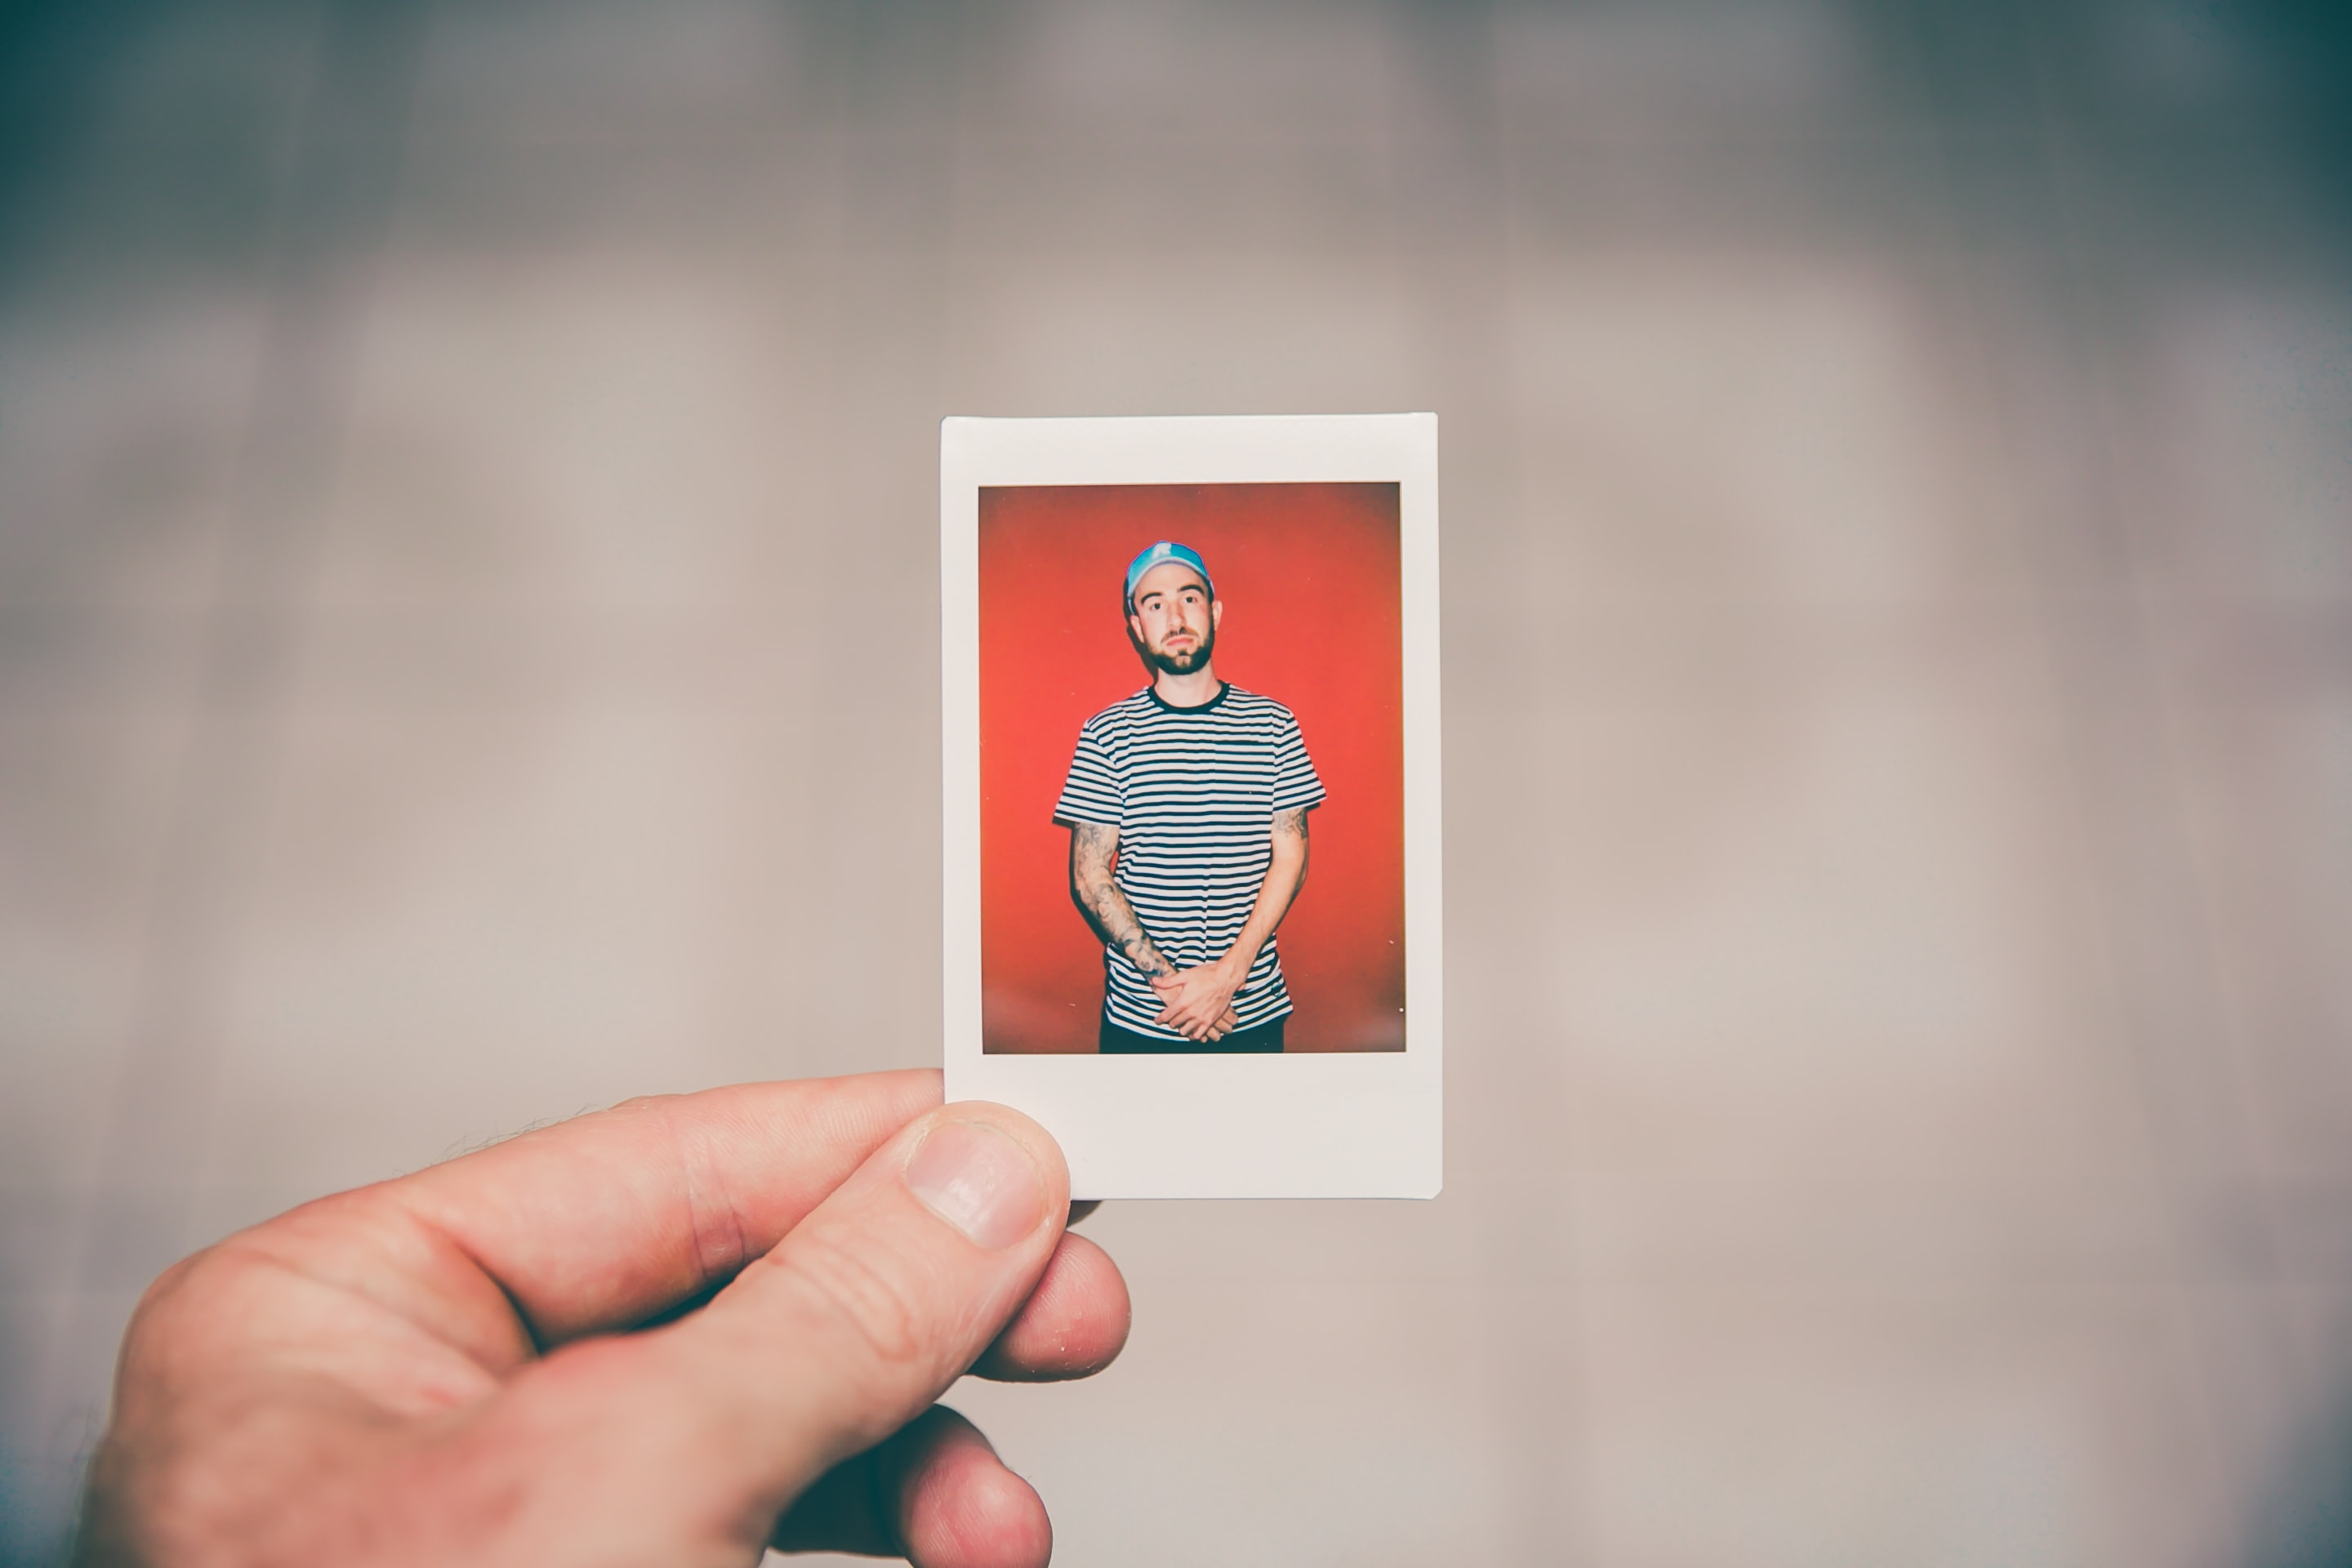 Hand holding a photograph of a man in a striped shirt with tattoos wearing a baseball cap